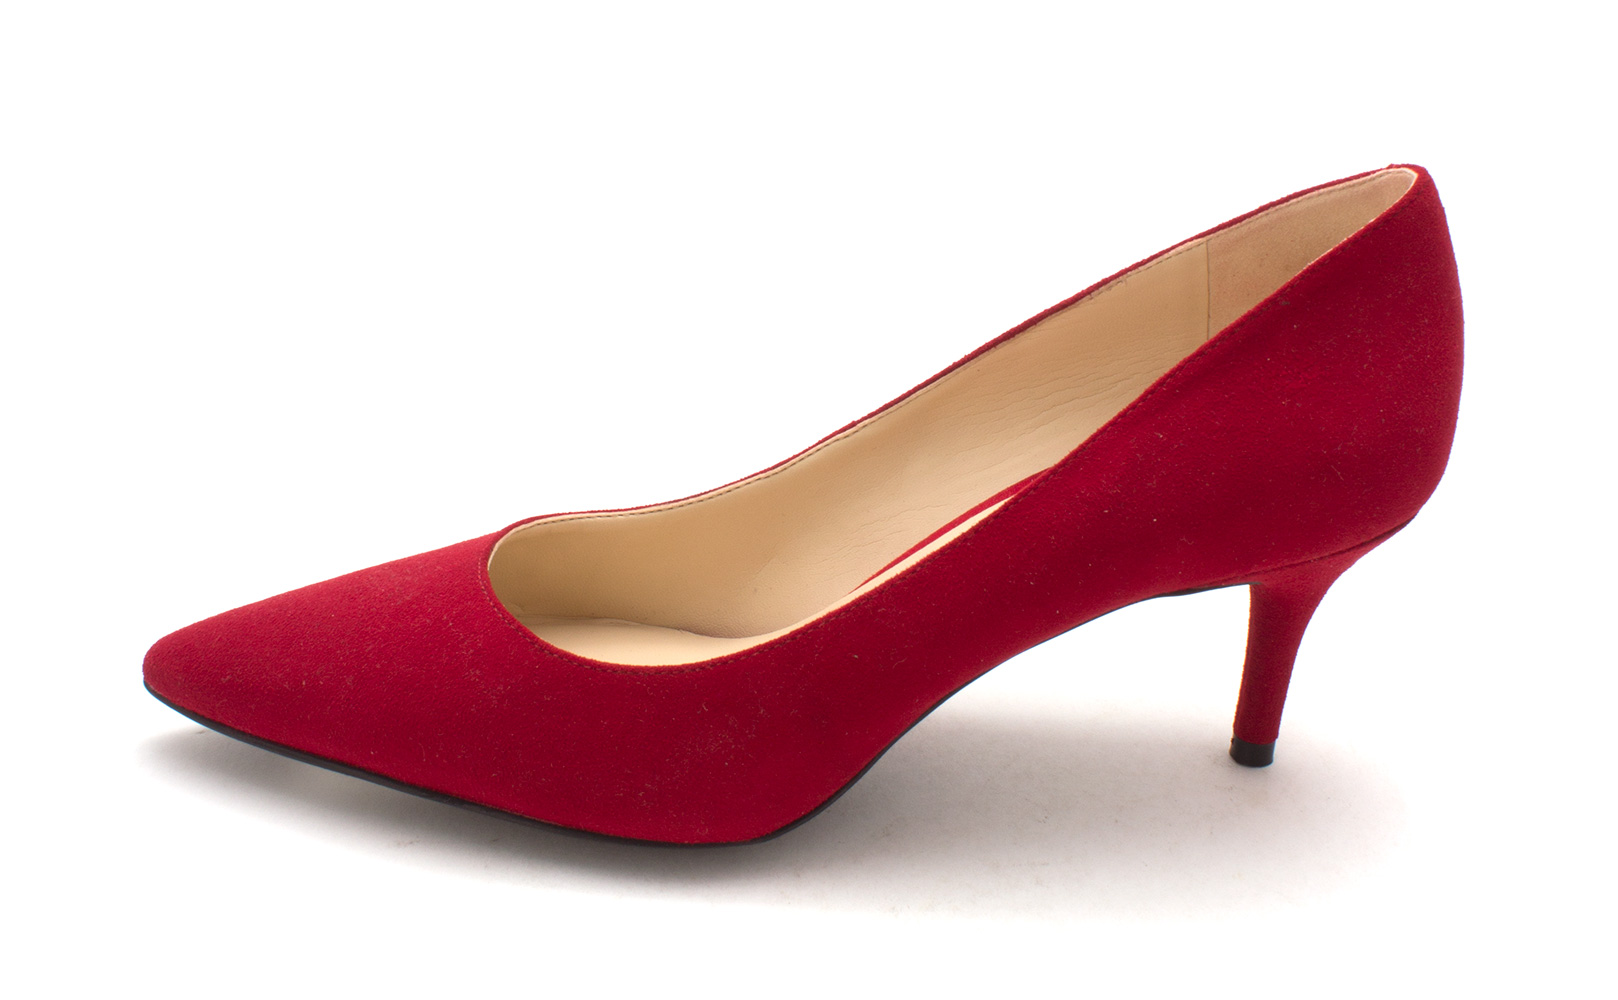 Nine West Womens Margot Suede Pointed Toe Classic Pumps Red Suede Size 5.0